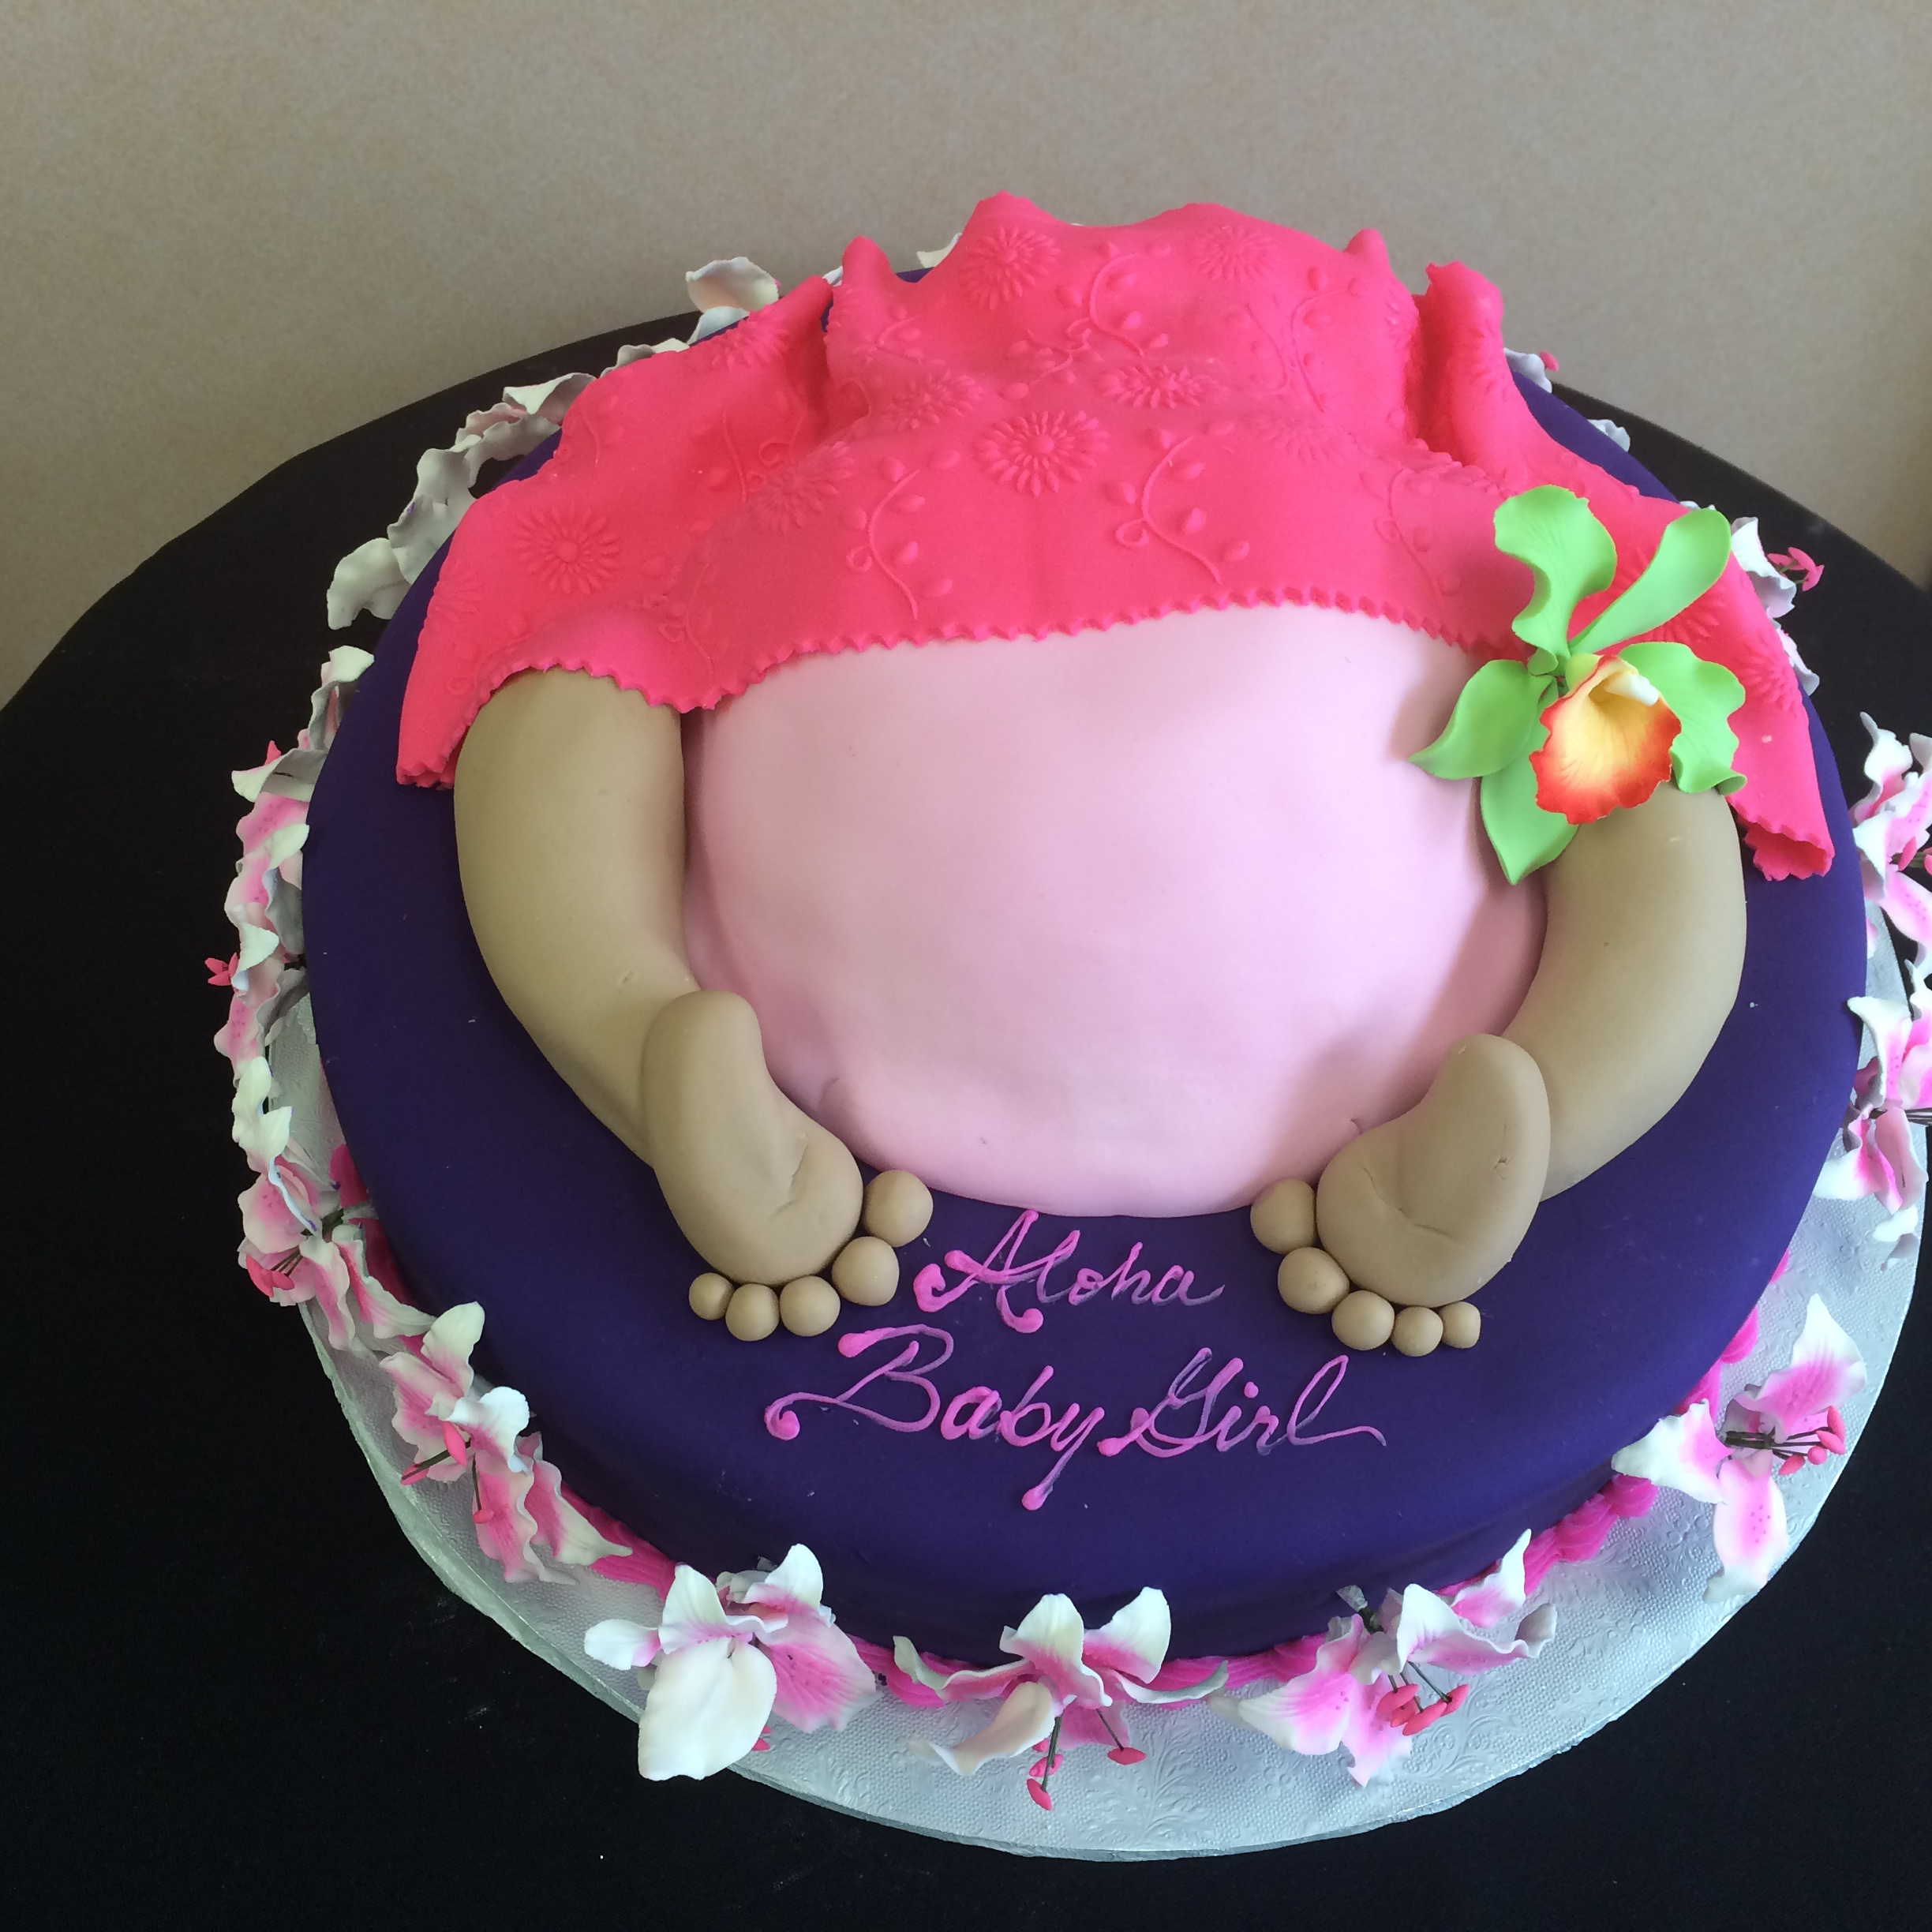 Baby Bottom Cake. Purple Rolled Fondant with Flowers.jpg